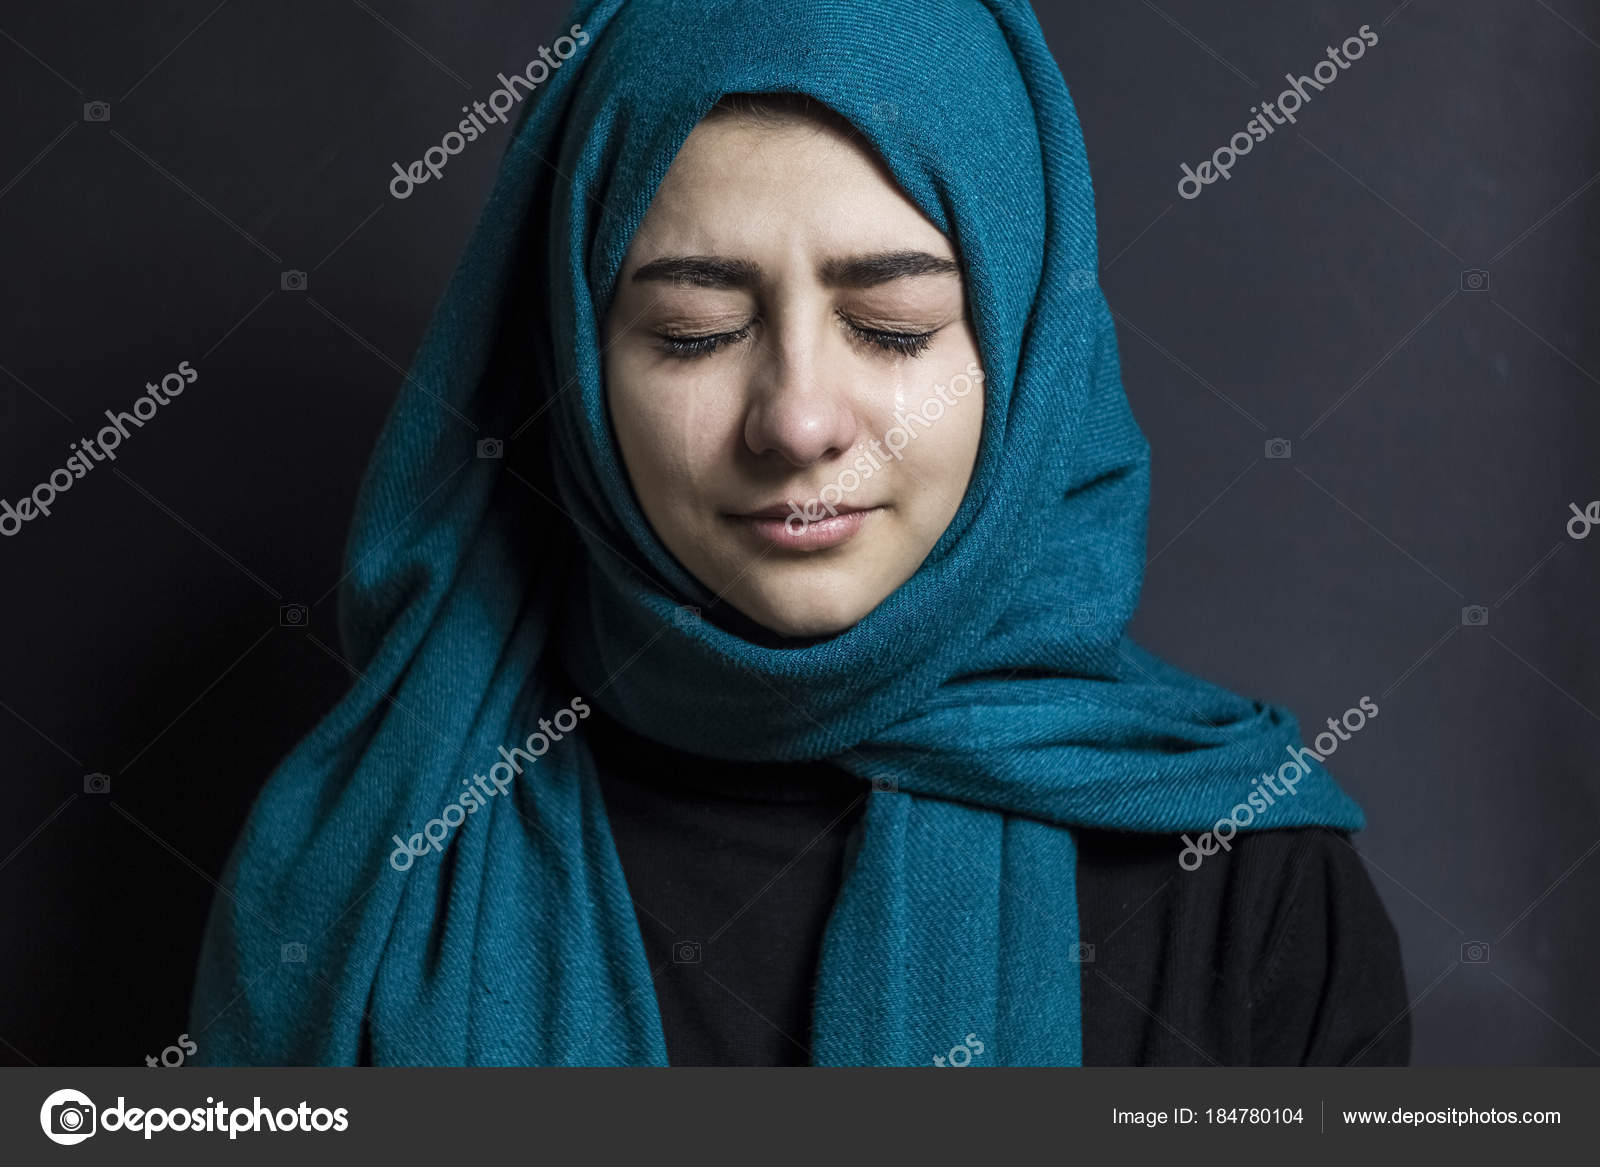 Portrait of a muslim girl with tears in her eyes stock image